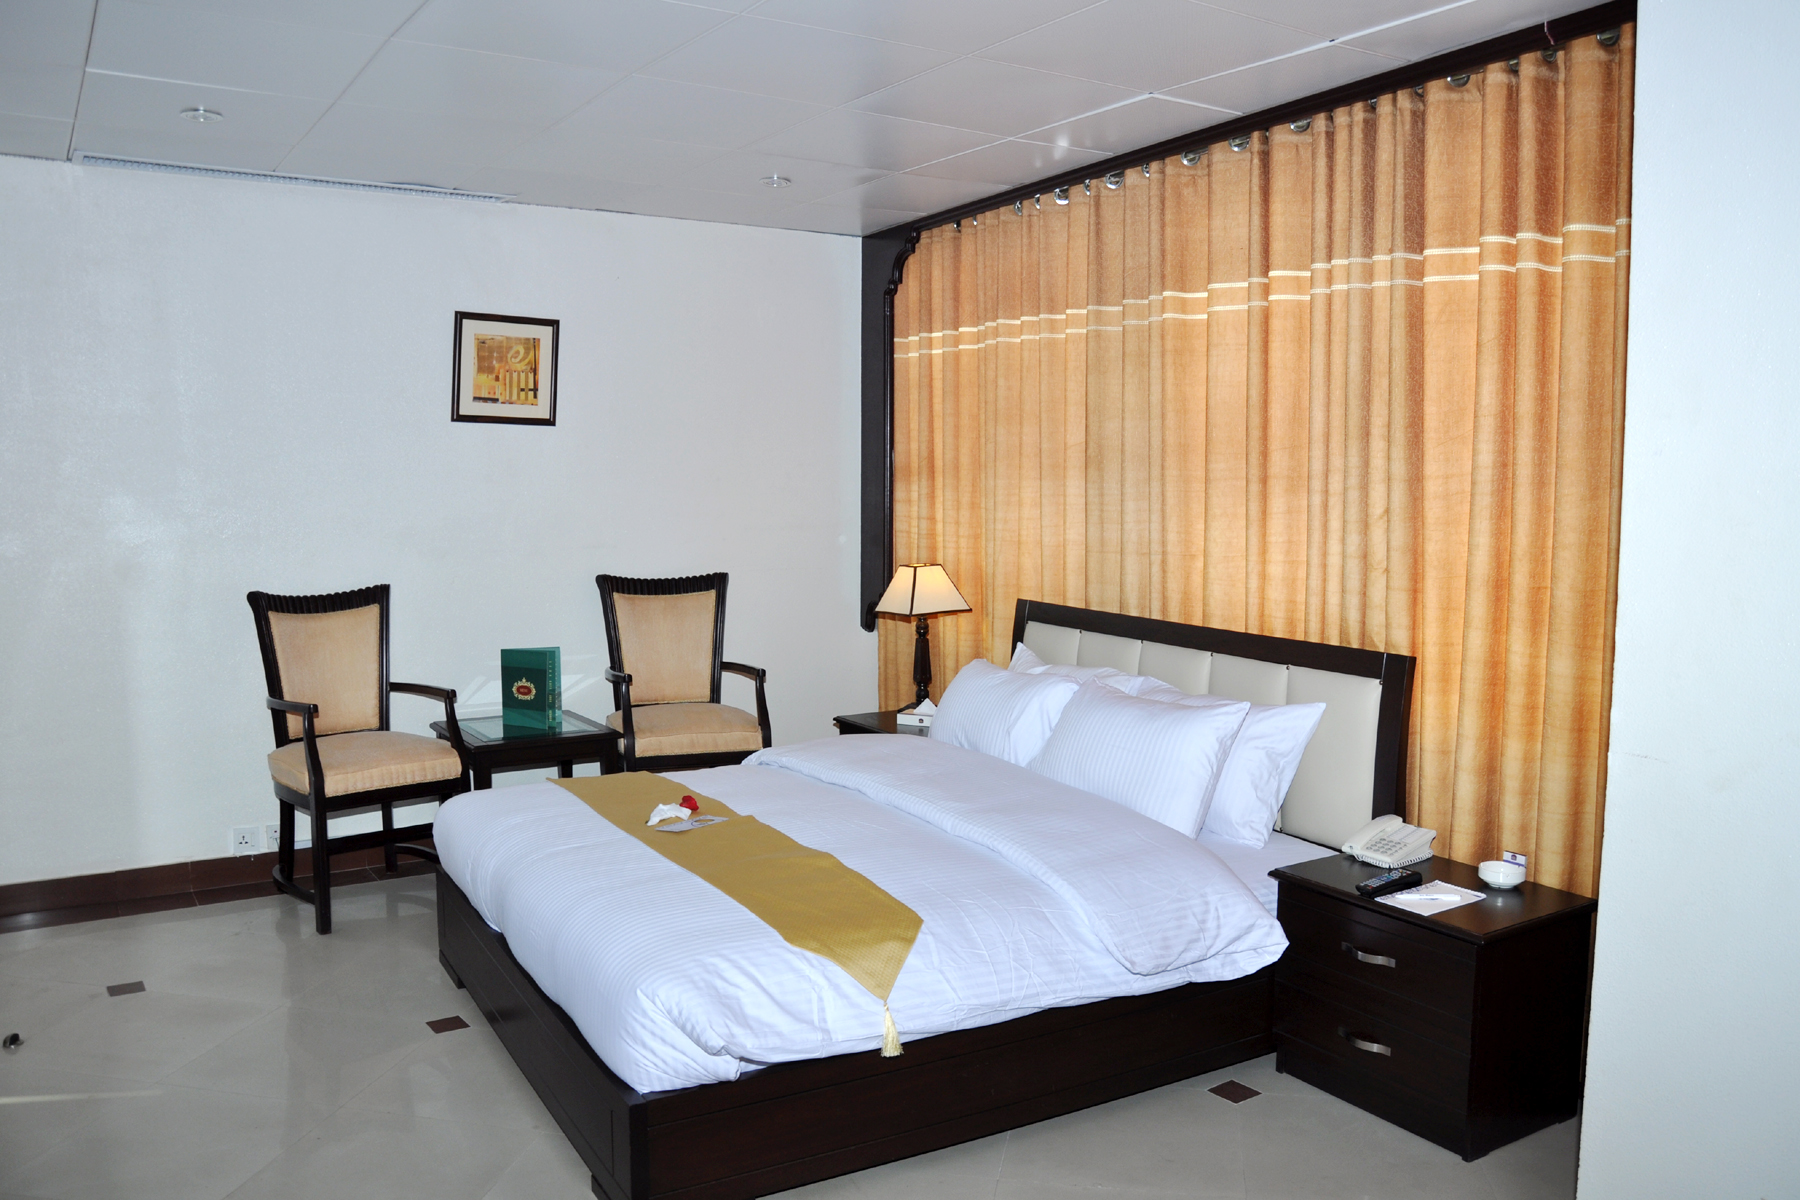 Be a Booker. Search hotels and more in Islamabad